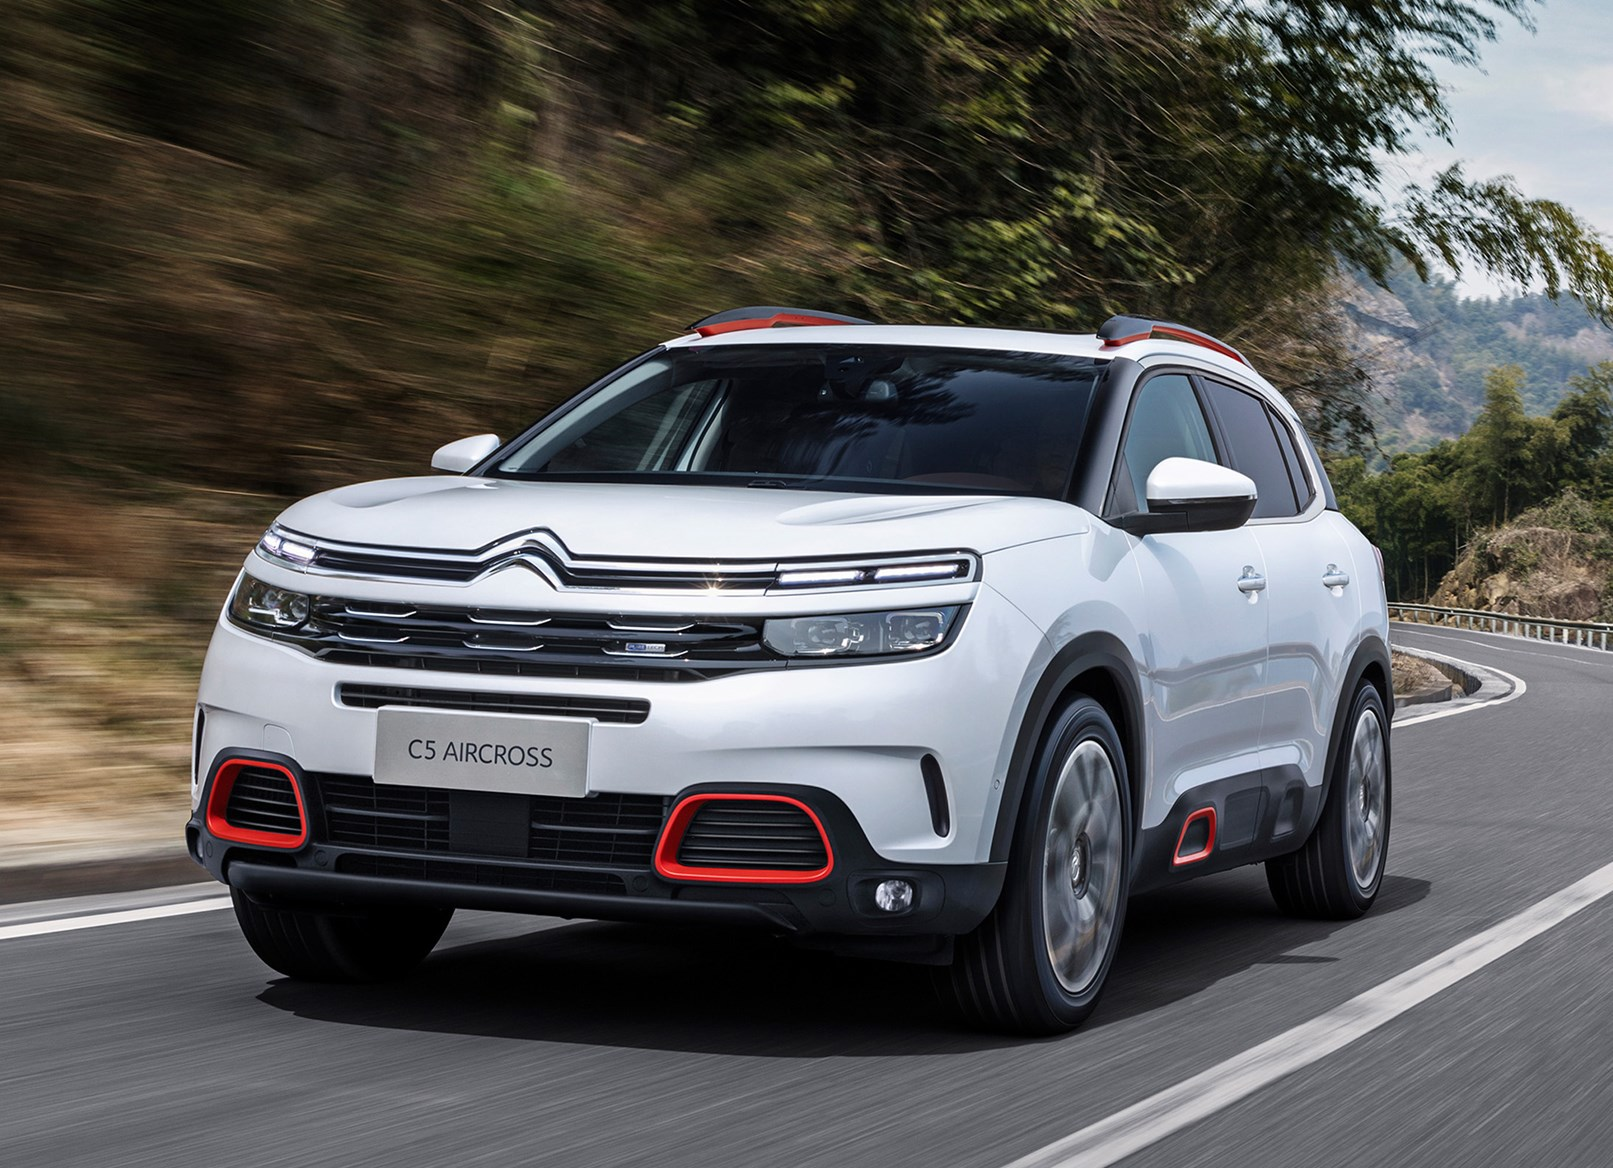 citroen c5 aircross review parkers. Black Bedroom Furniture Sets. Home Design Ideas